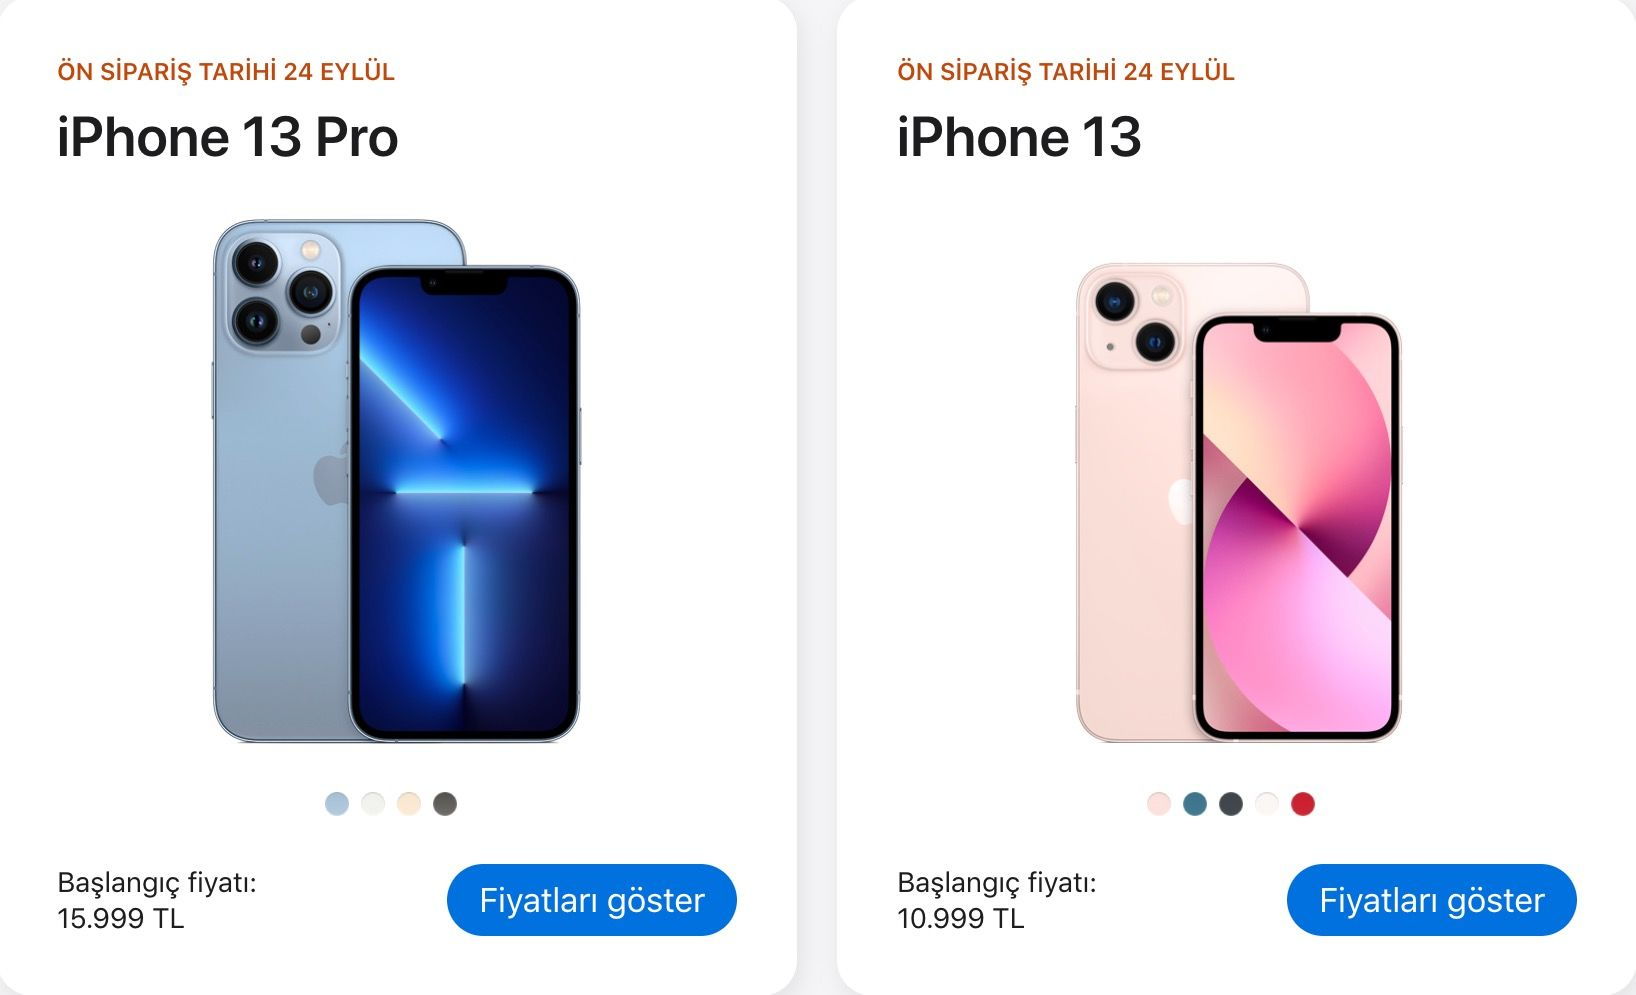 Apple iPhone 13 Turkey price, models and features